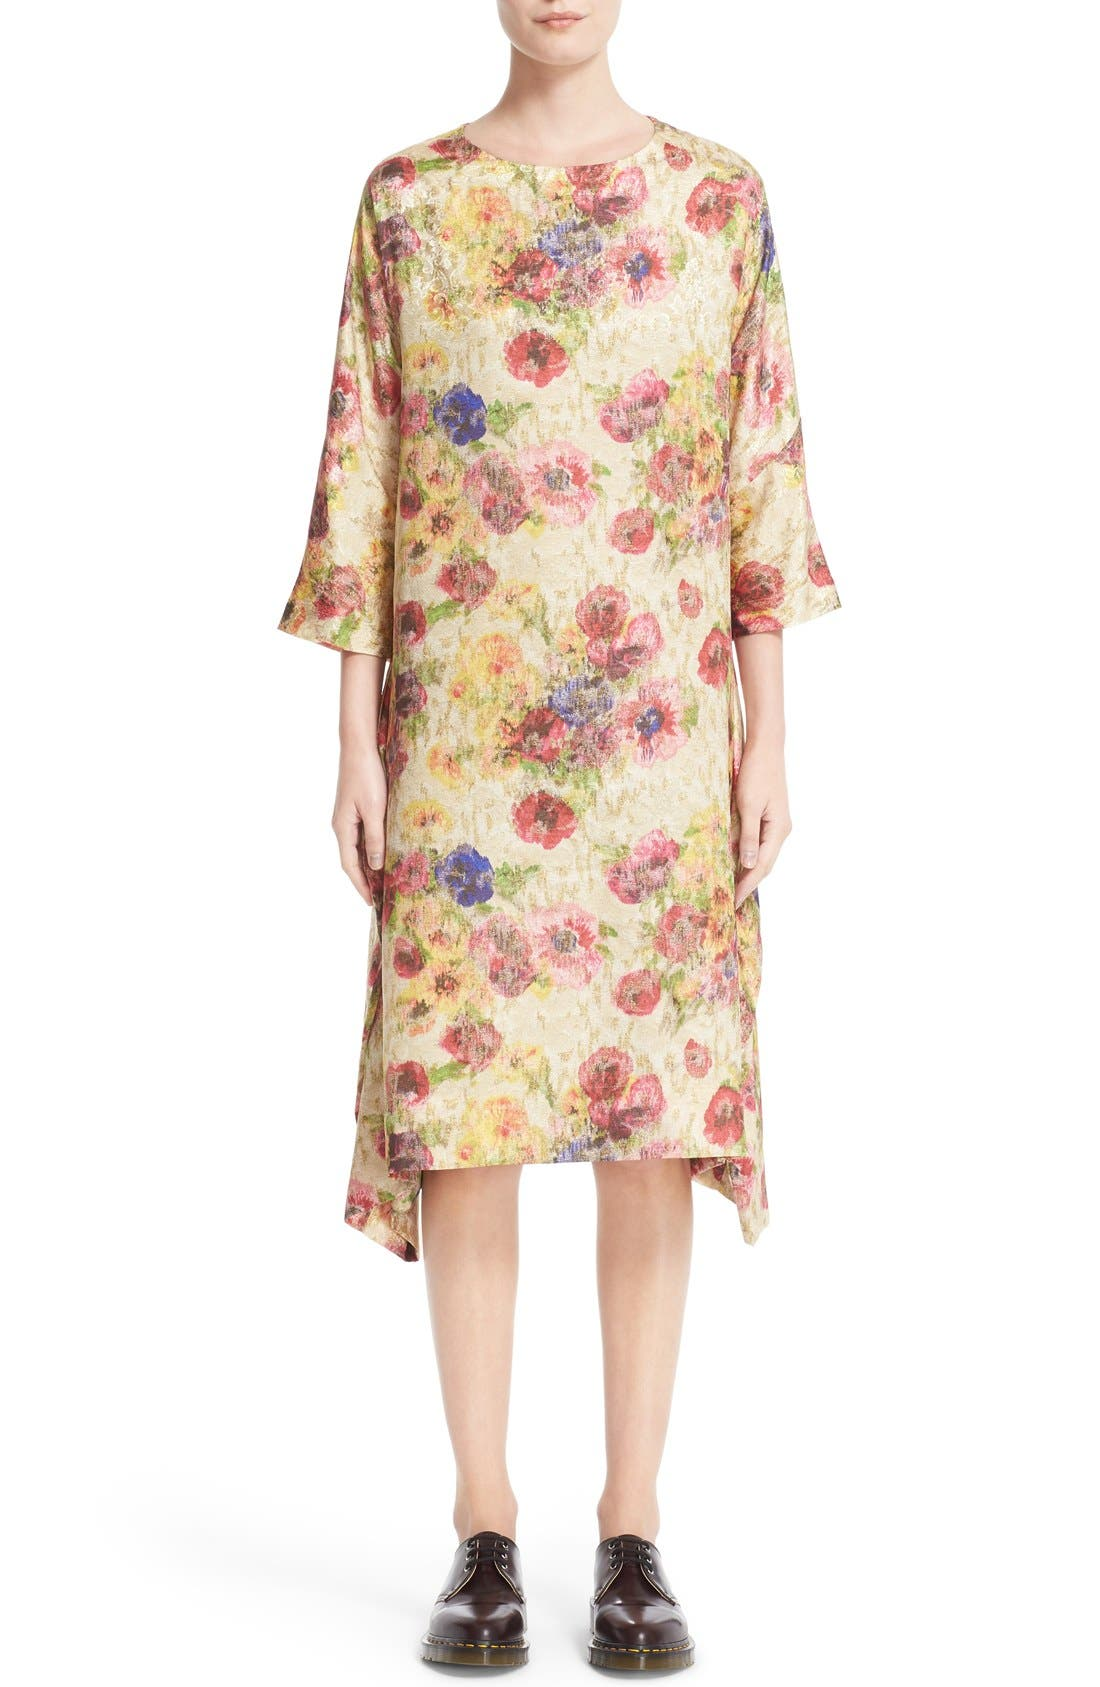 Alternate Image 1 Selected - Comme des Garçons Floral Jacquard Shift Dress